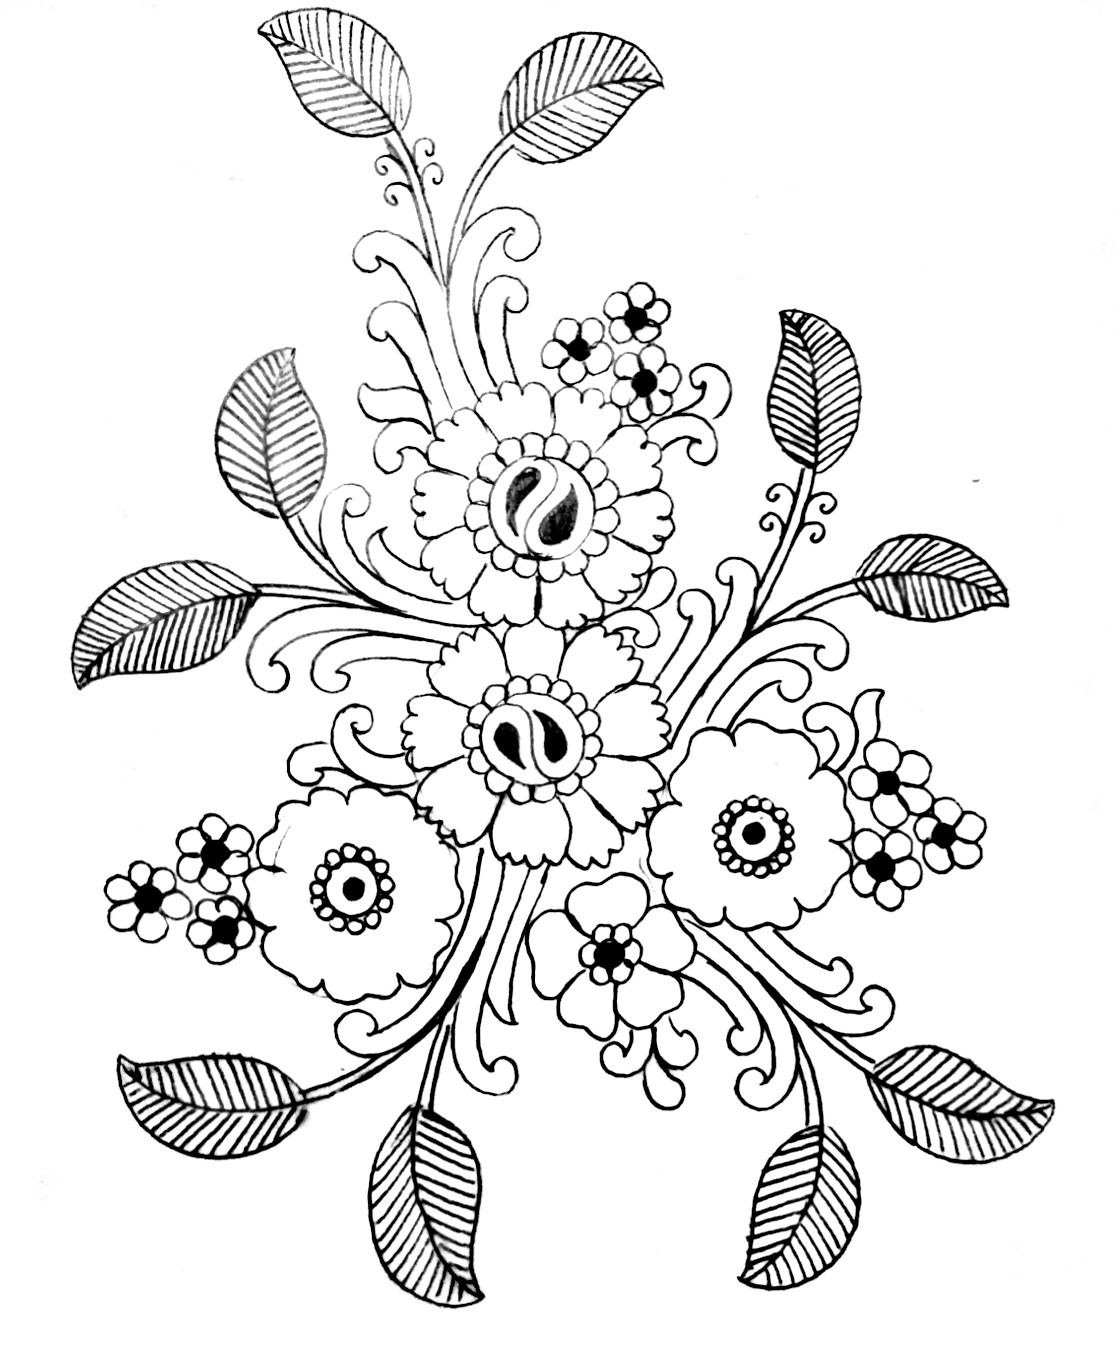 Flowers design drawing for embroidery/free download embroidery design images/ pencil sketches saree pics for embroidery.